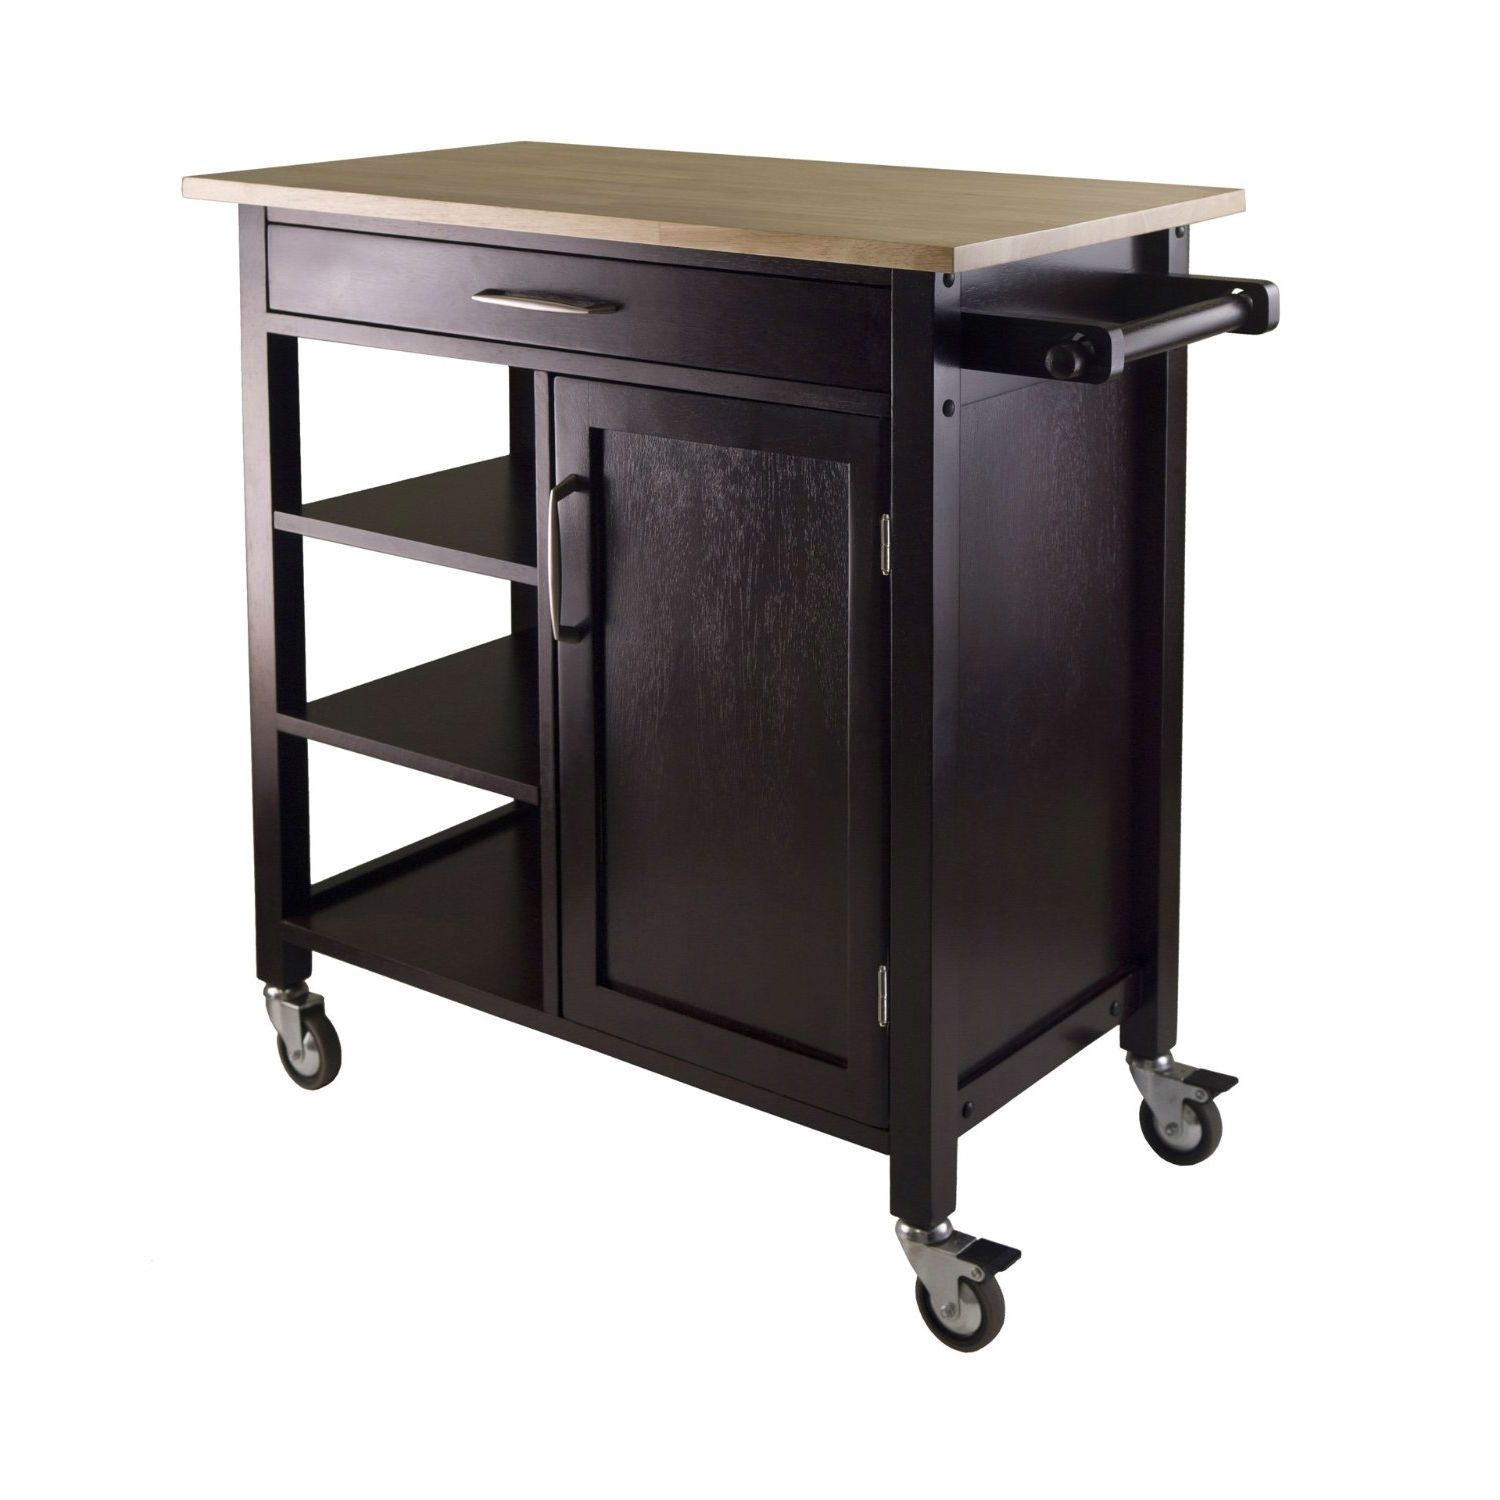 Mobile Kitchen Island Cart Wood Cabinet Storage Portable: Natural Wood Top Mobile Kitchen Cart In Espresso Finish